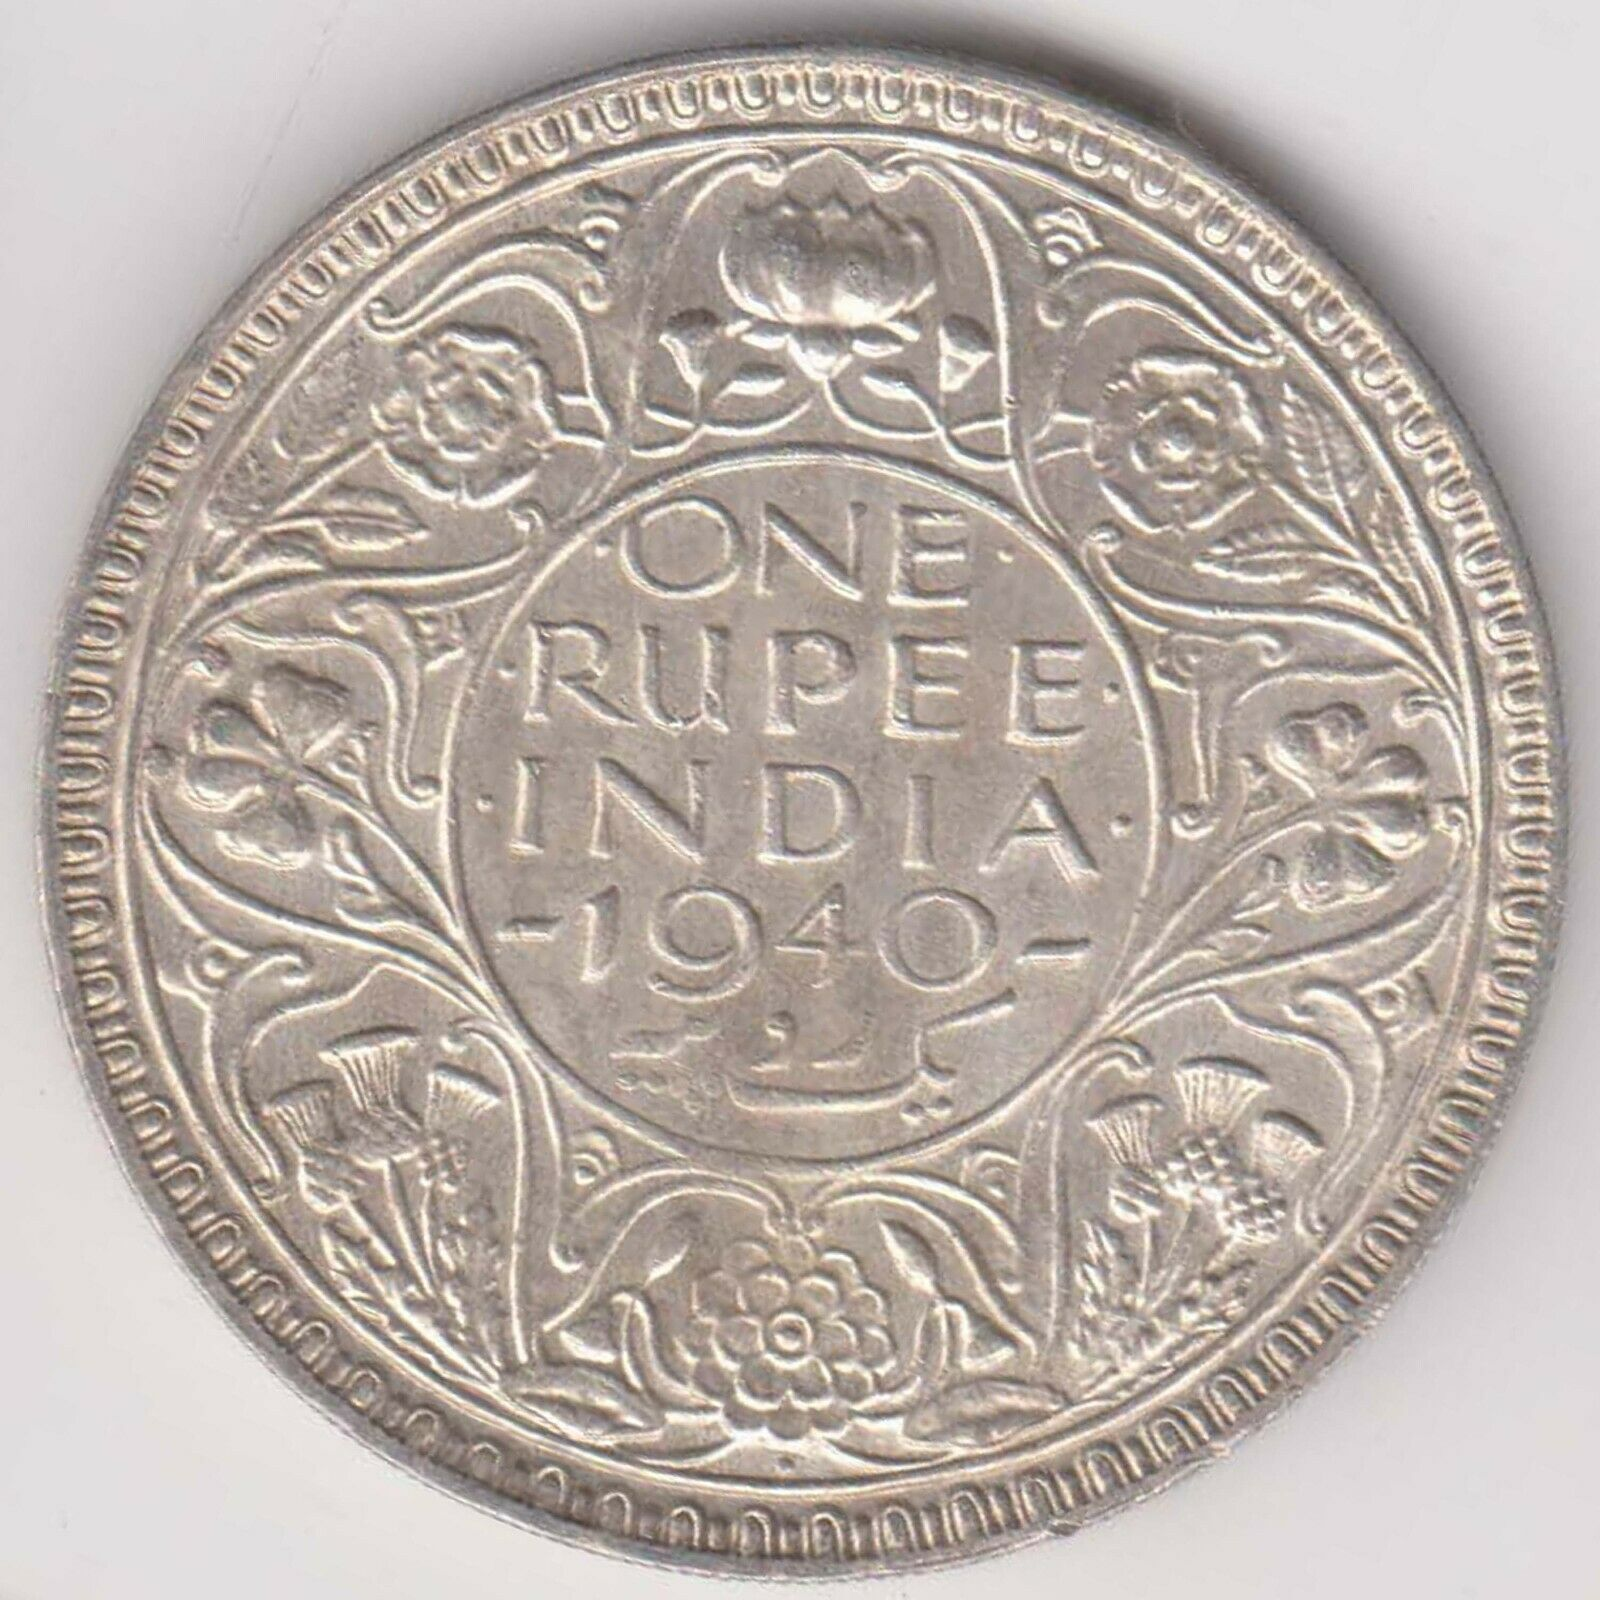 where can i sell silver coins near me